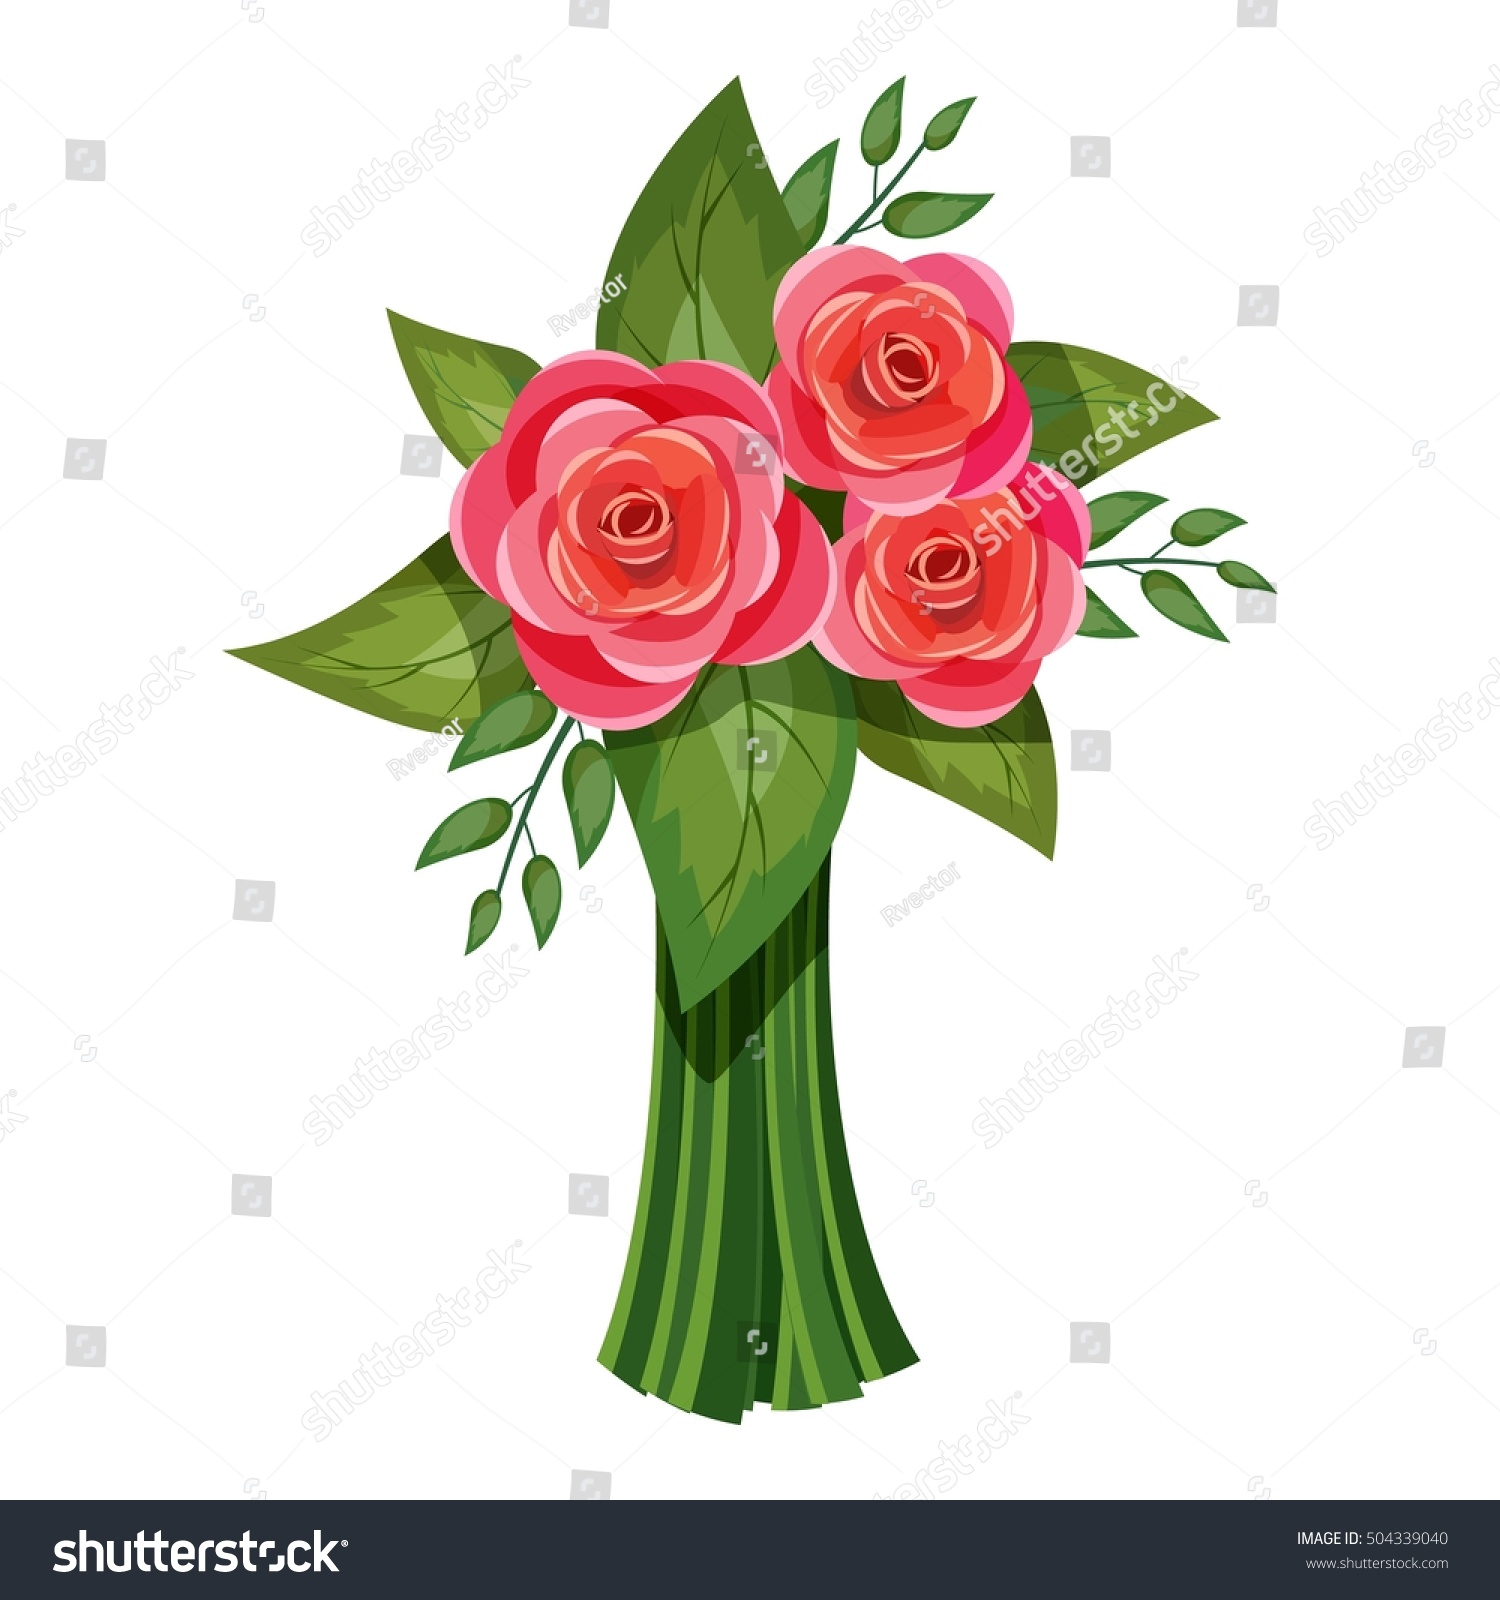 Pink Roses Bouquet Flowers Icon Cartoon Stock Vector 504339040 ...